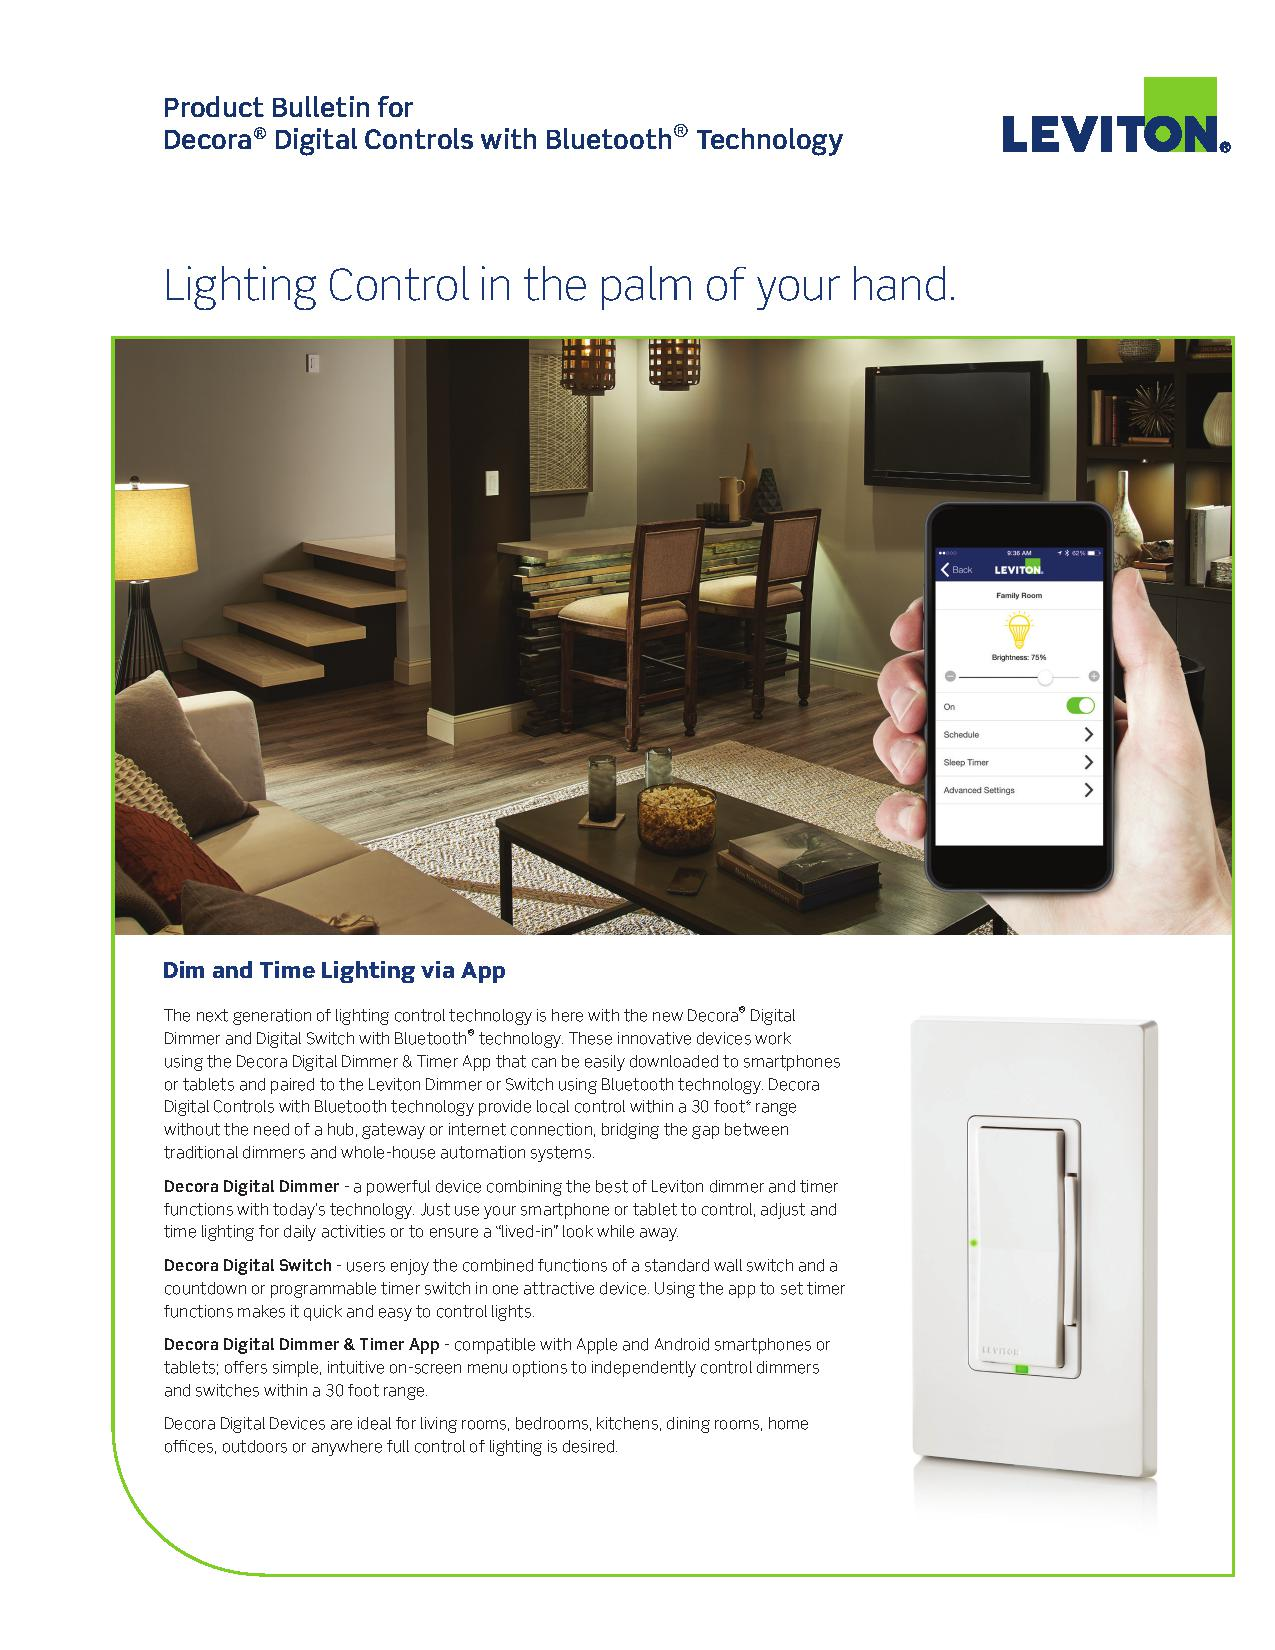 Leviton Decora® Digital Dimmer and Digital Switch with Bluetooth ...